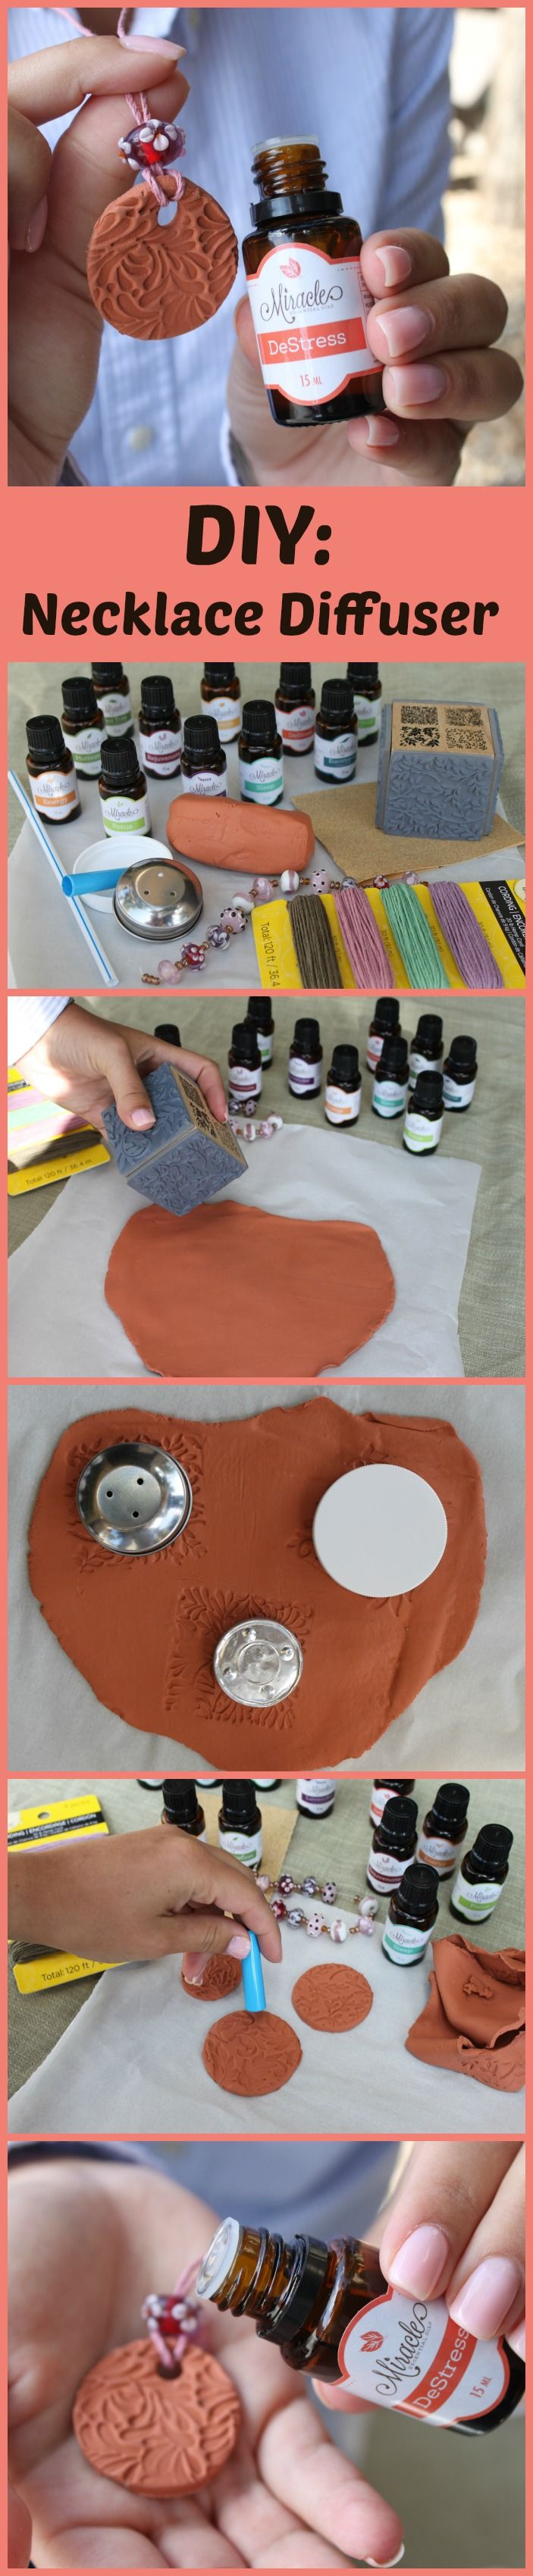 How to make your very own DIY Clay Necklace Diffuser for essential oils! Love this idea. It's super easy to make and the scent last so long around your neck. Could be cool as a bracelet too :) This Brand is my fav: https://miracleessentialoils.com/guide408/?&c1=PIN&c2=C14-A4